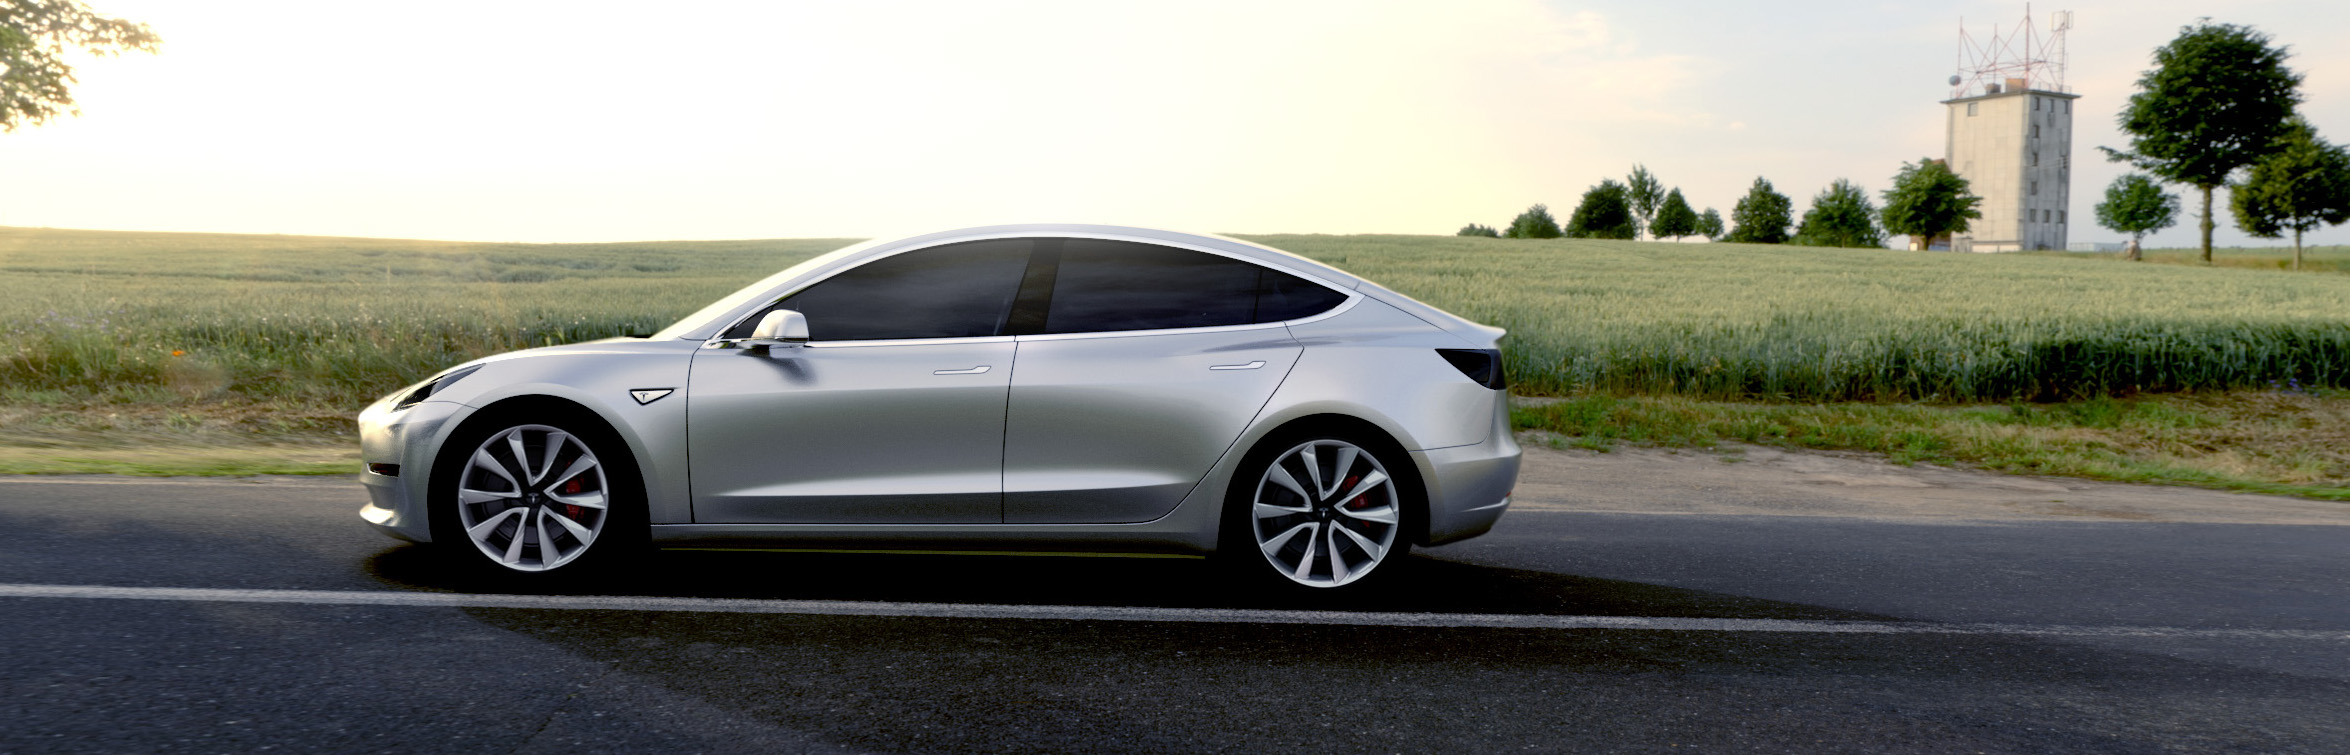 Pro-Tesla bill brings promise of investment in Connecticut